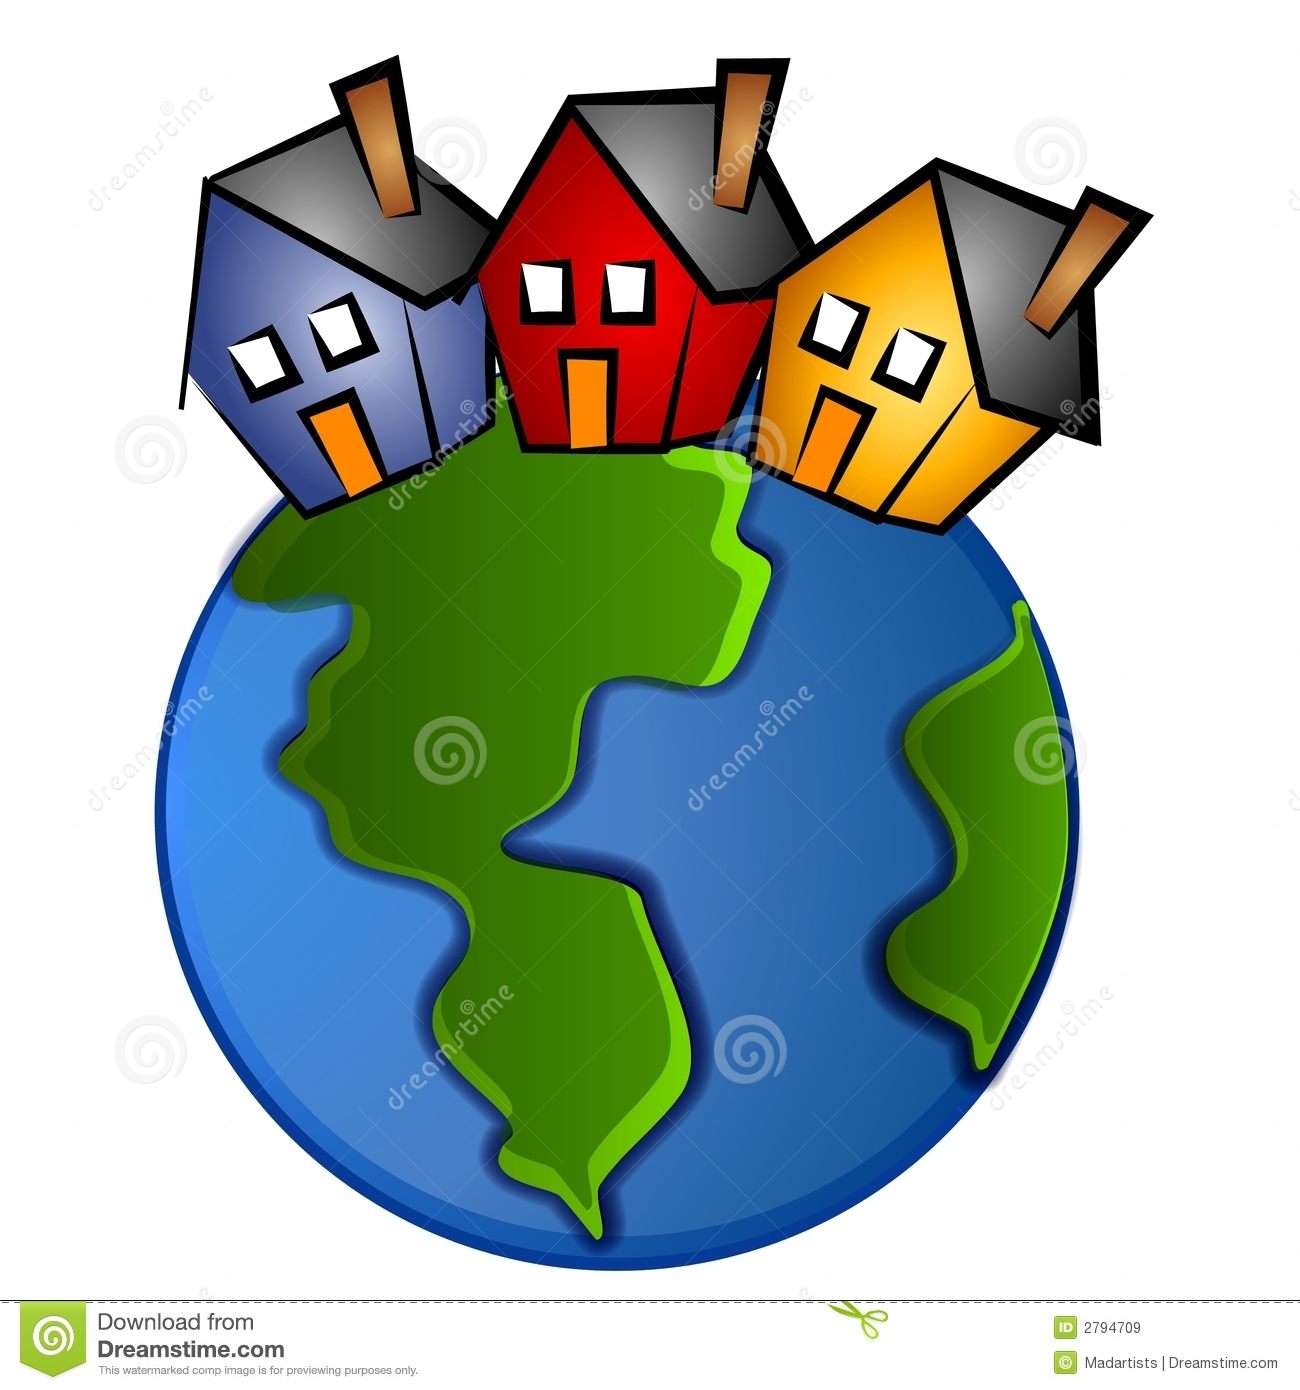 Real estate clip art clipart panda free clipart images for Clipart estate